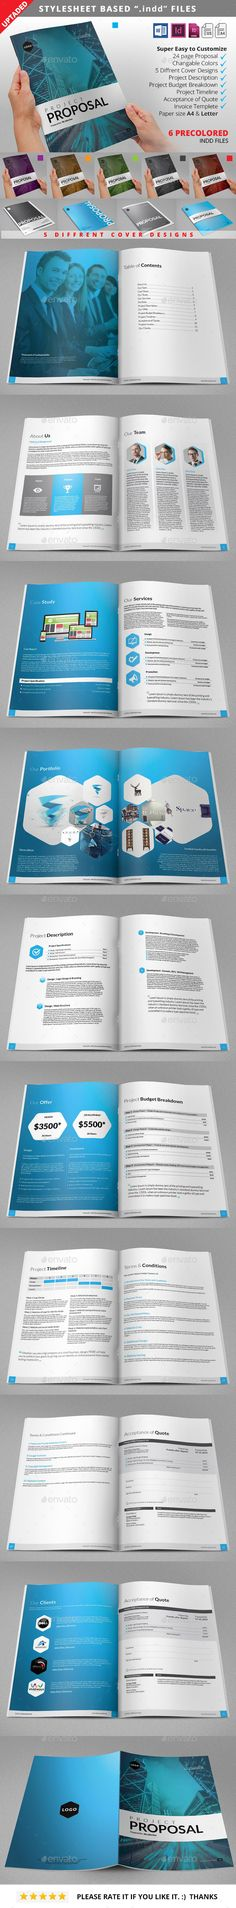 IT Consulting Services Proposal Template Proposal templates - best proposal templates